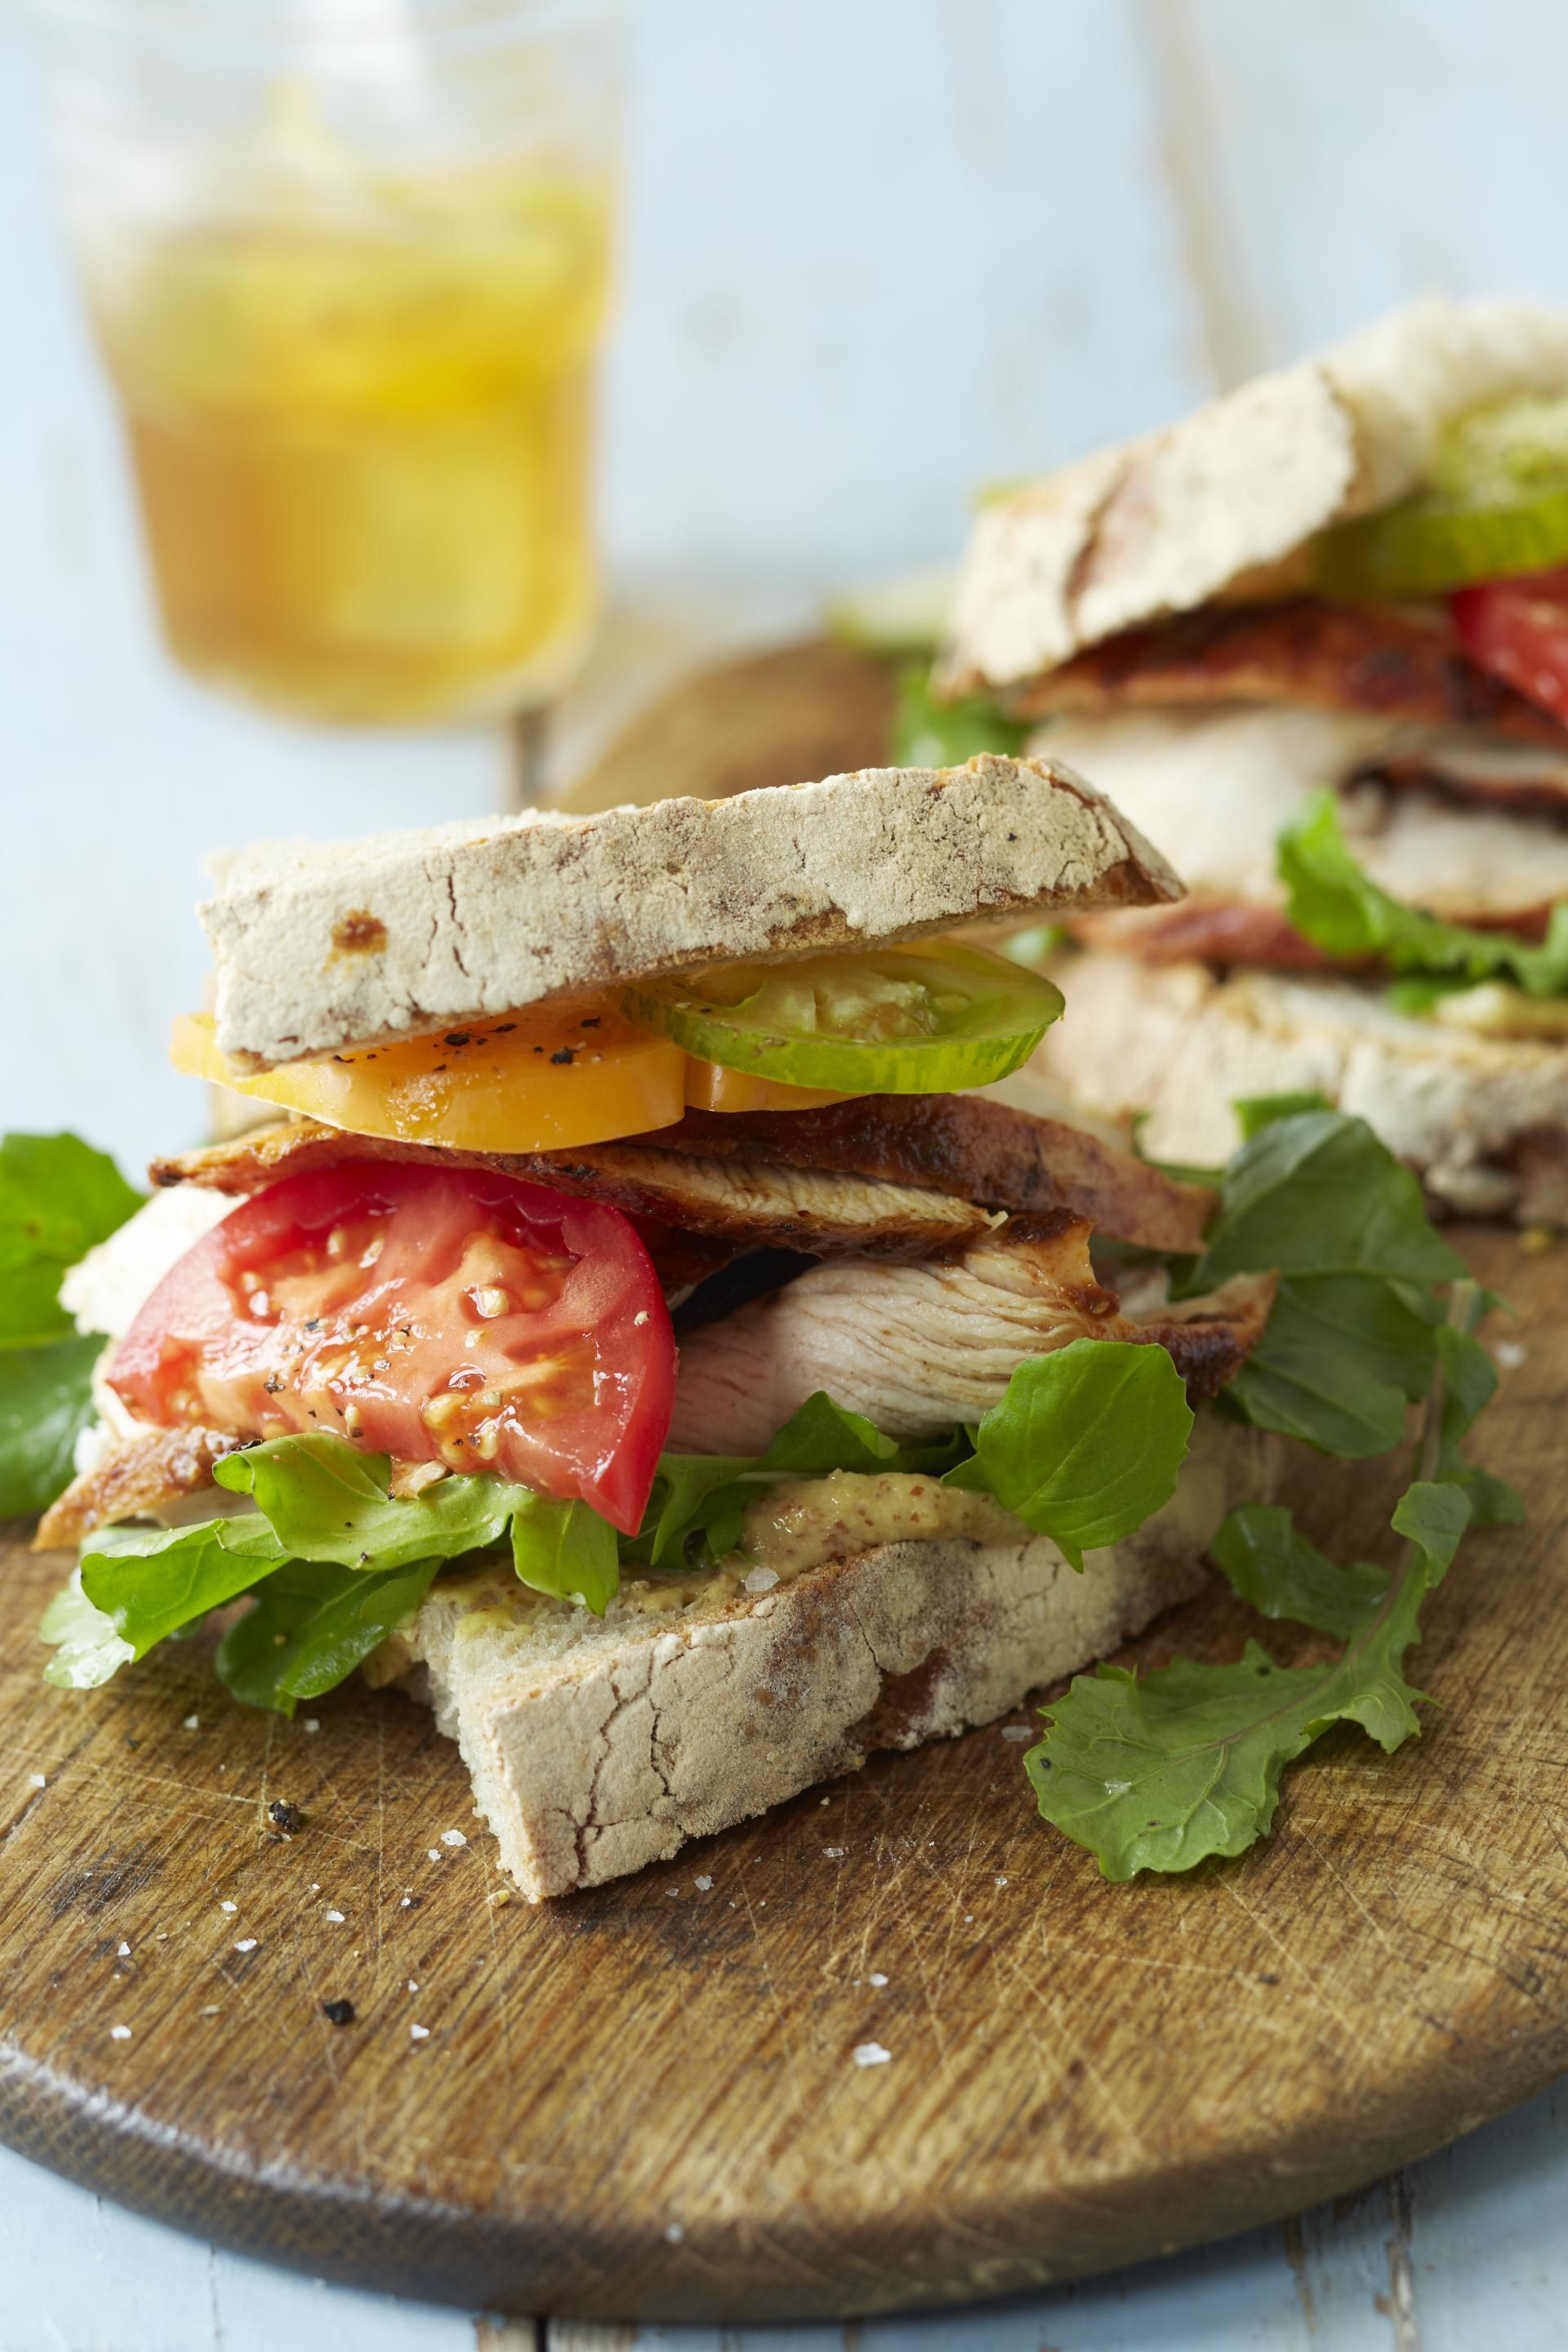 Smoked Turkey Breast with Honey-Maple Glaze #myplate #turkey #grill # sandwich